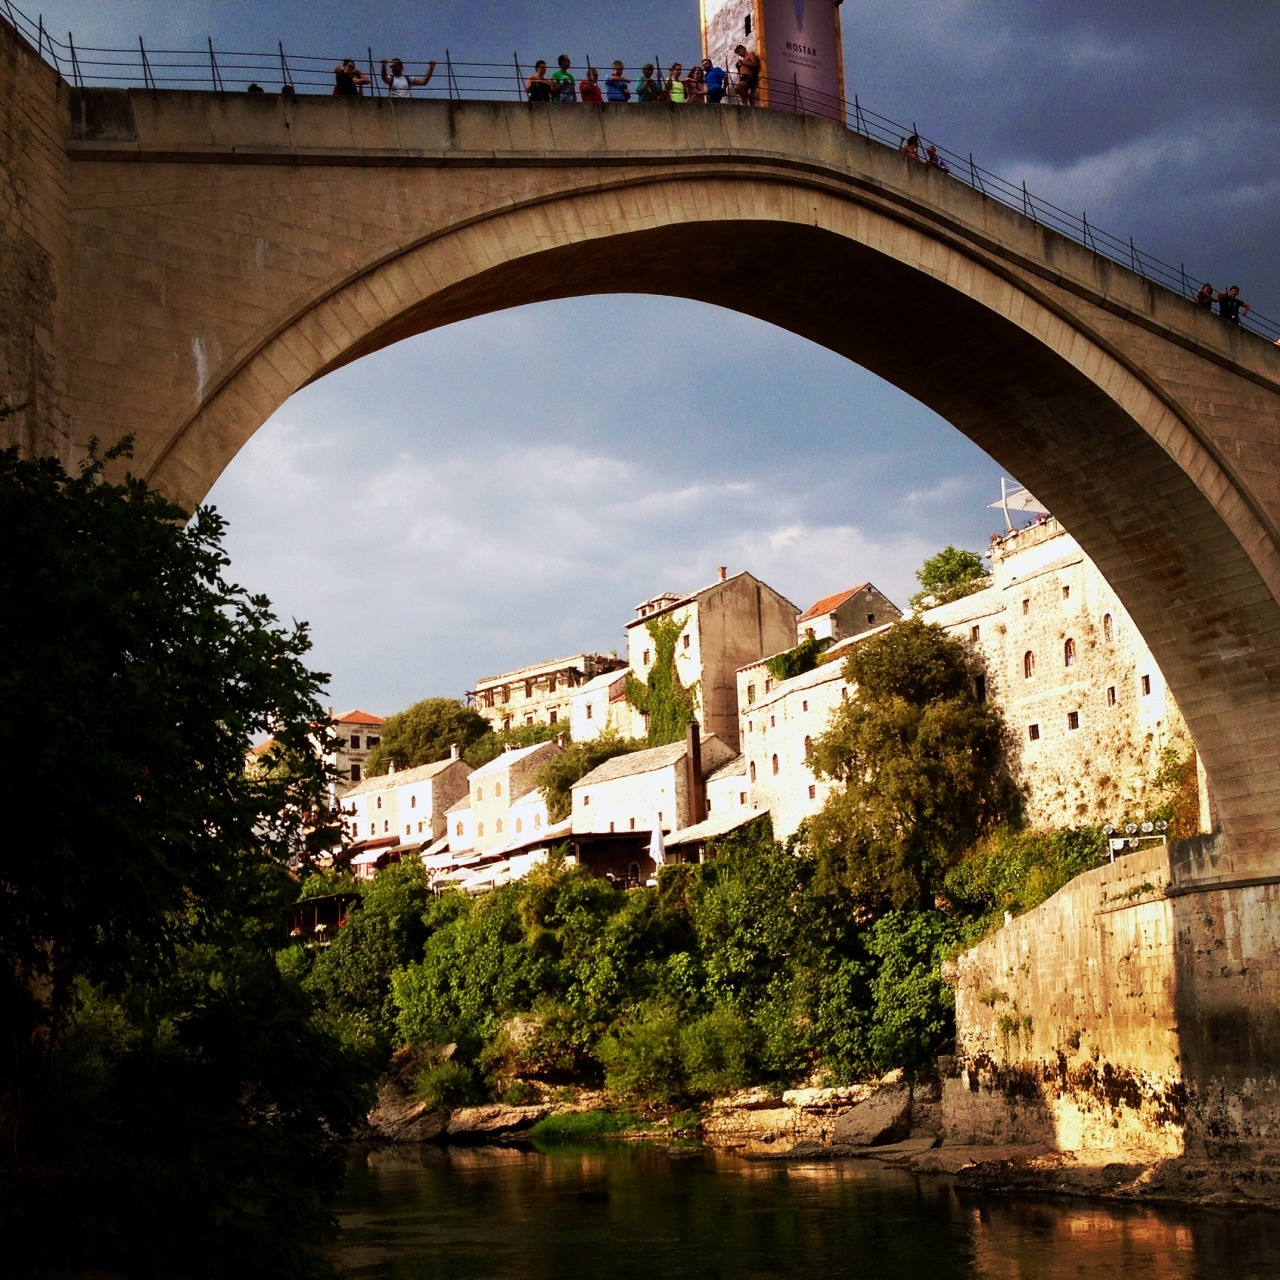 That famous bridge in Mostar